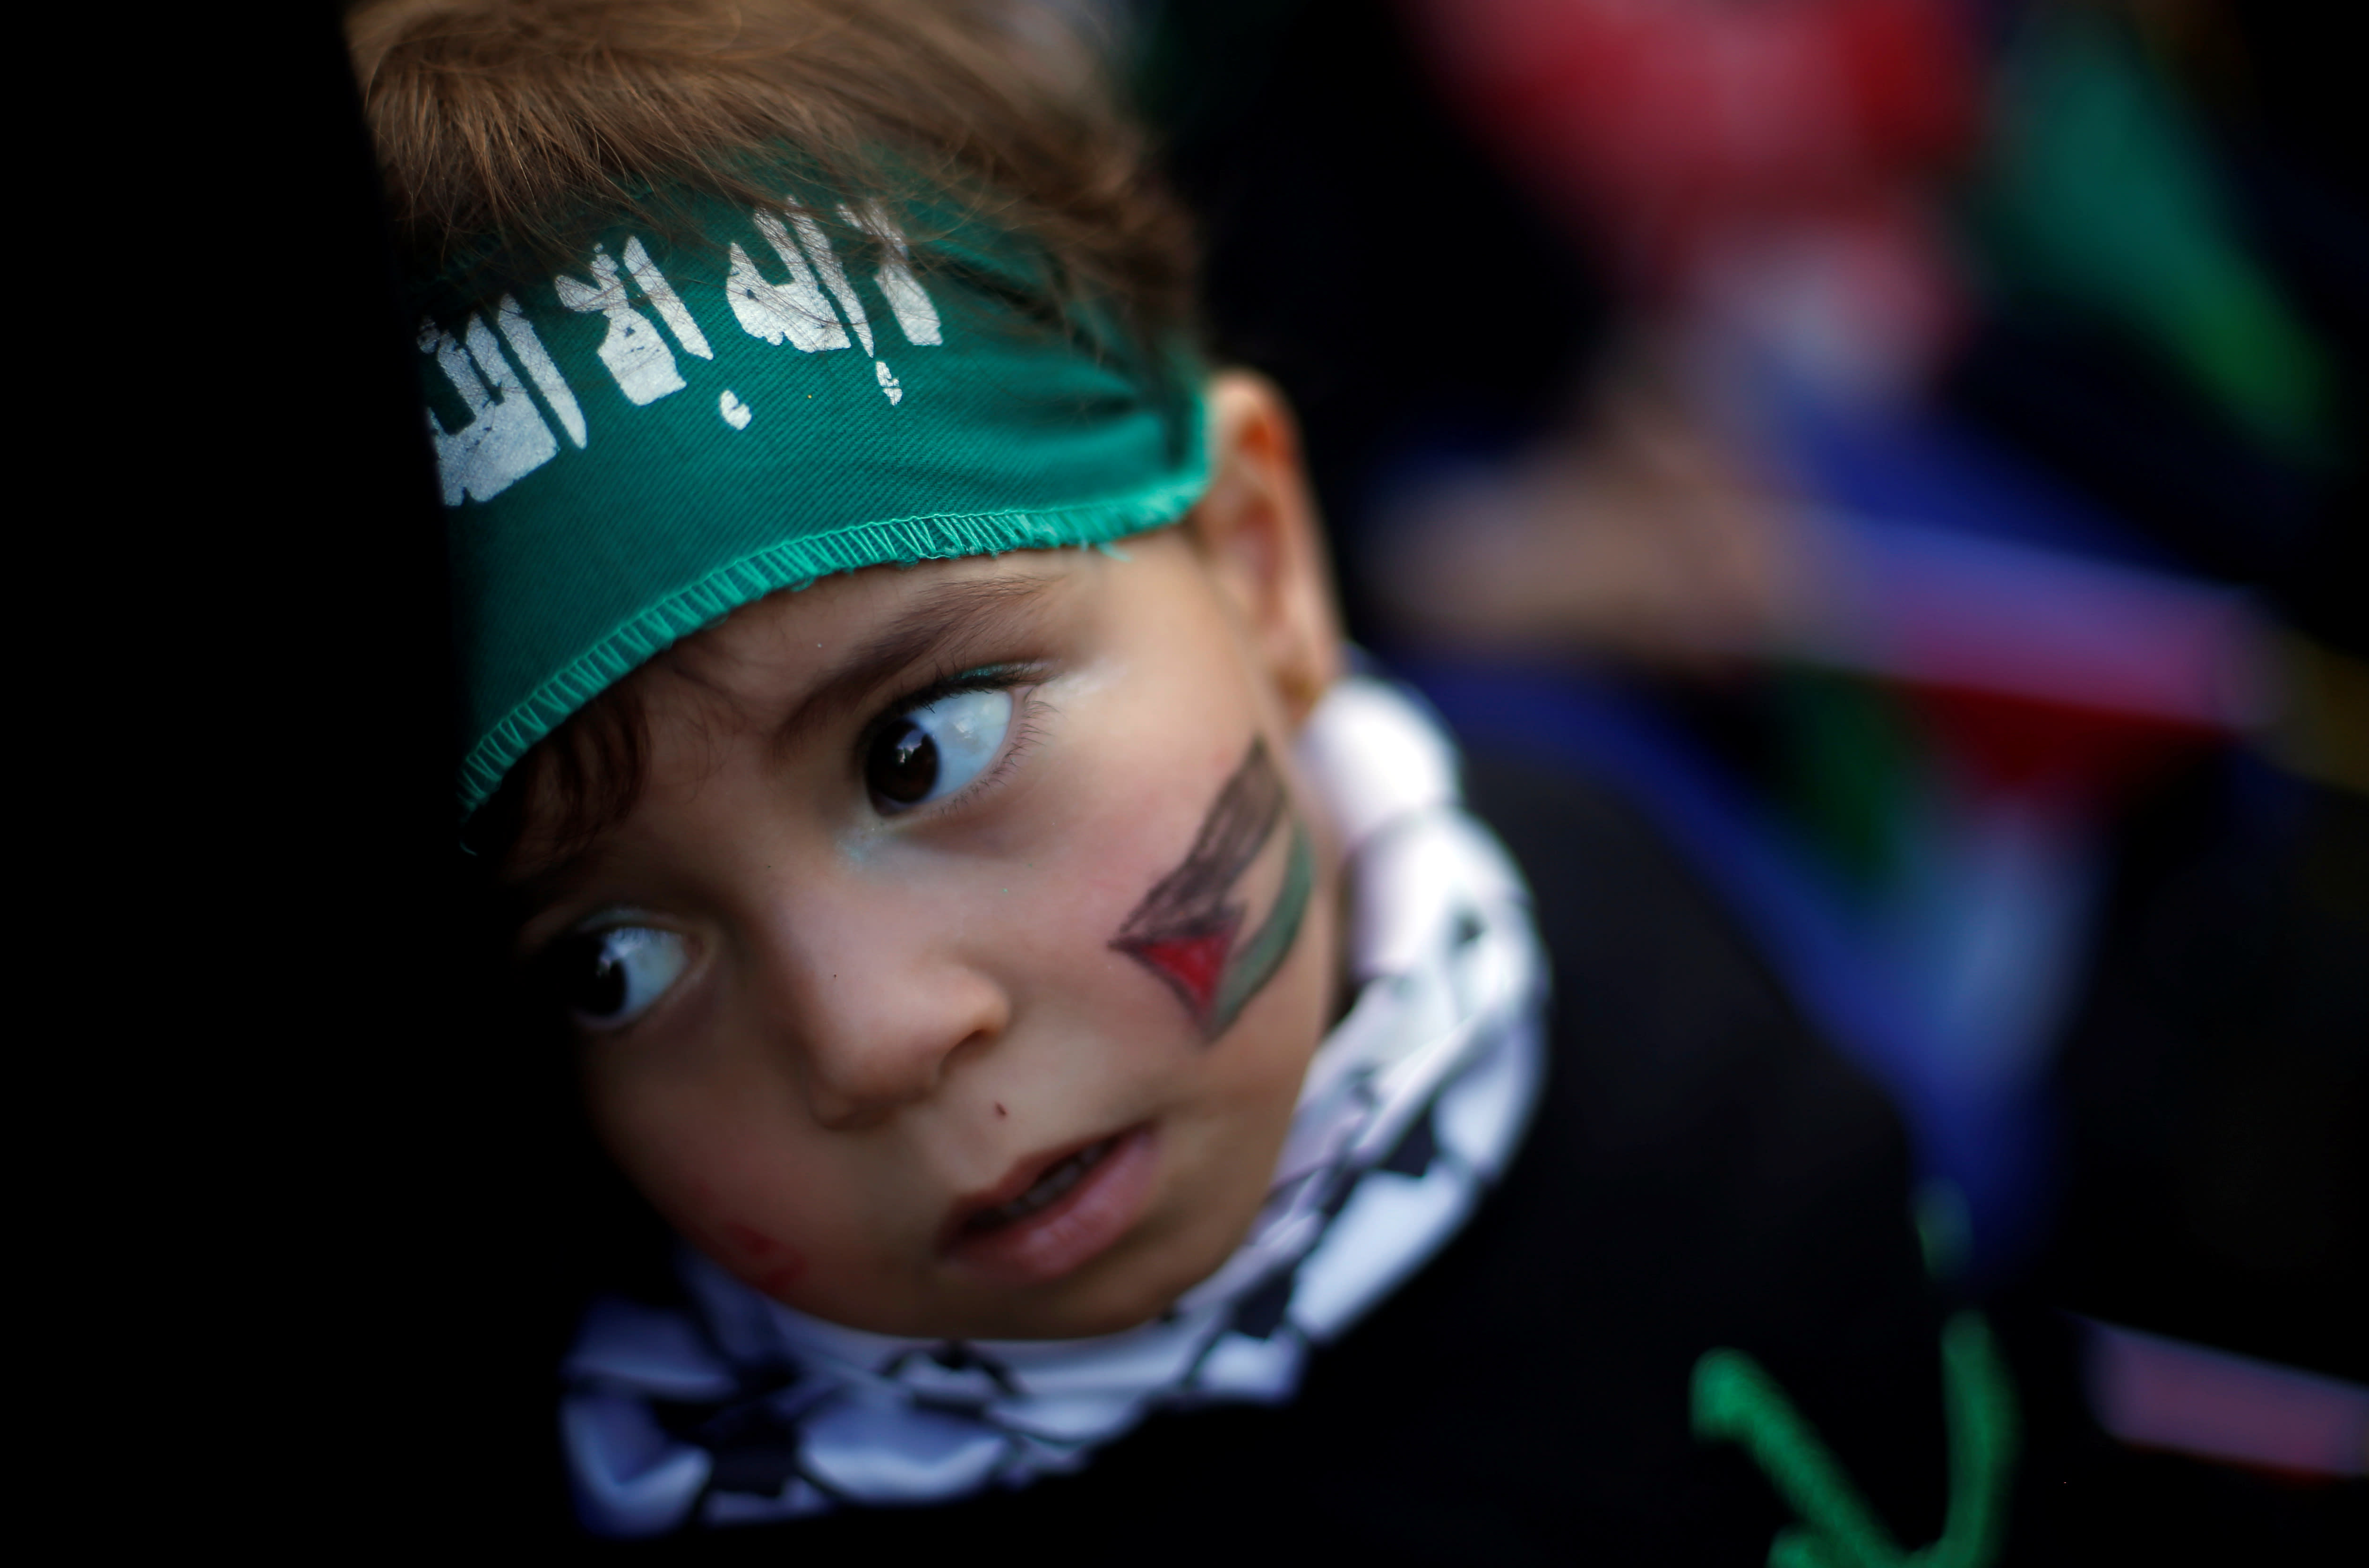 A Palestinian child wearing a Hamas headband takes part in a rally marking the 30th anniversary of Hamas' founding in Gaza City December 14, 2017 (SUHAIB SALEM/REUTERS)